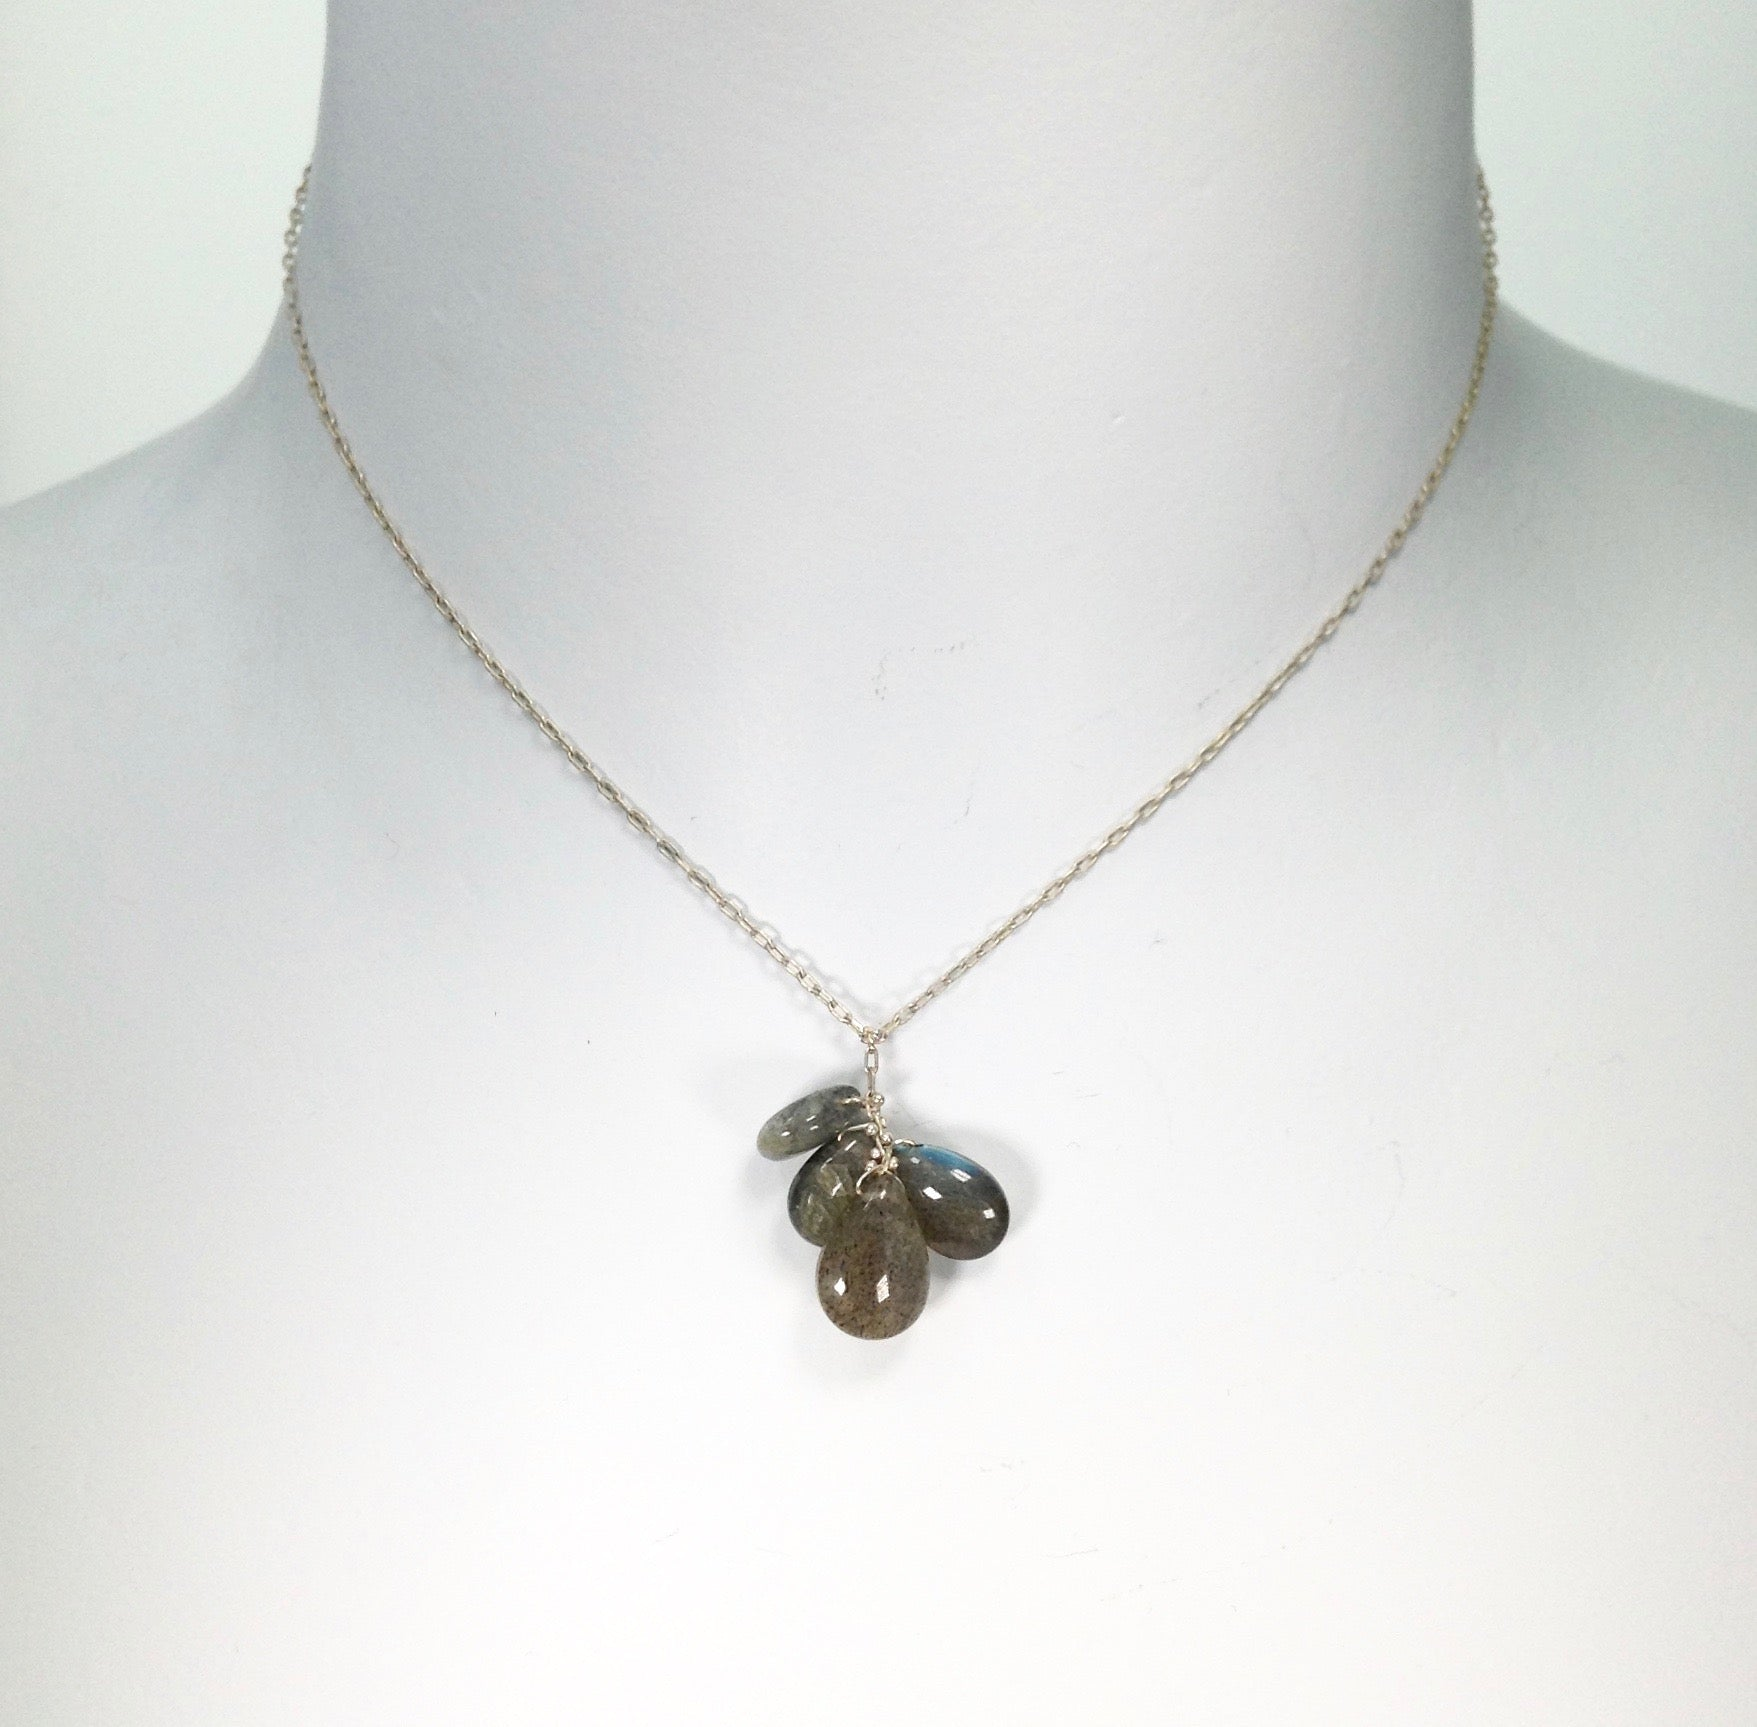 Ten Thousand Things Labradorite Necklace